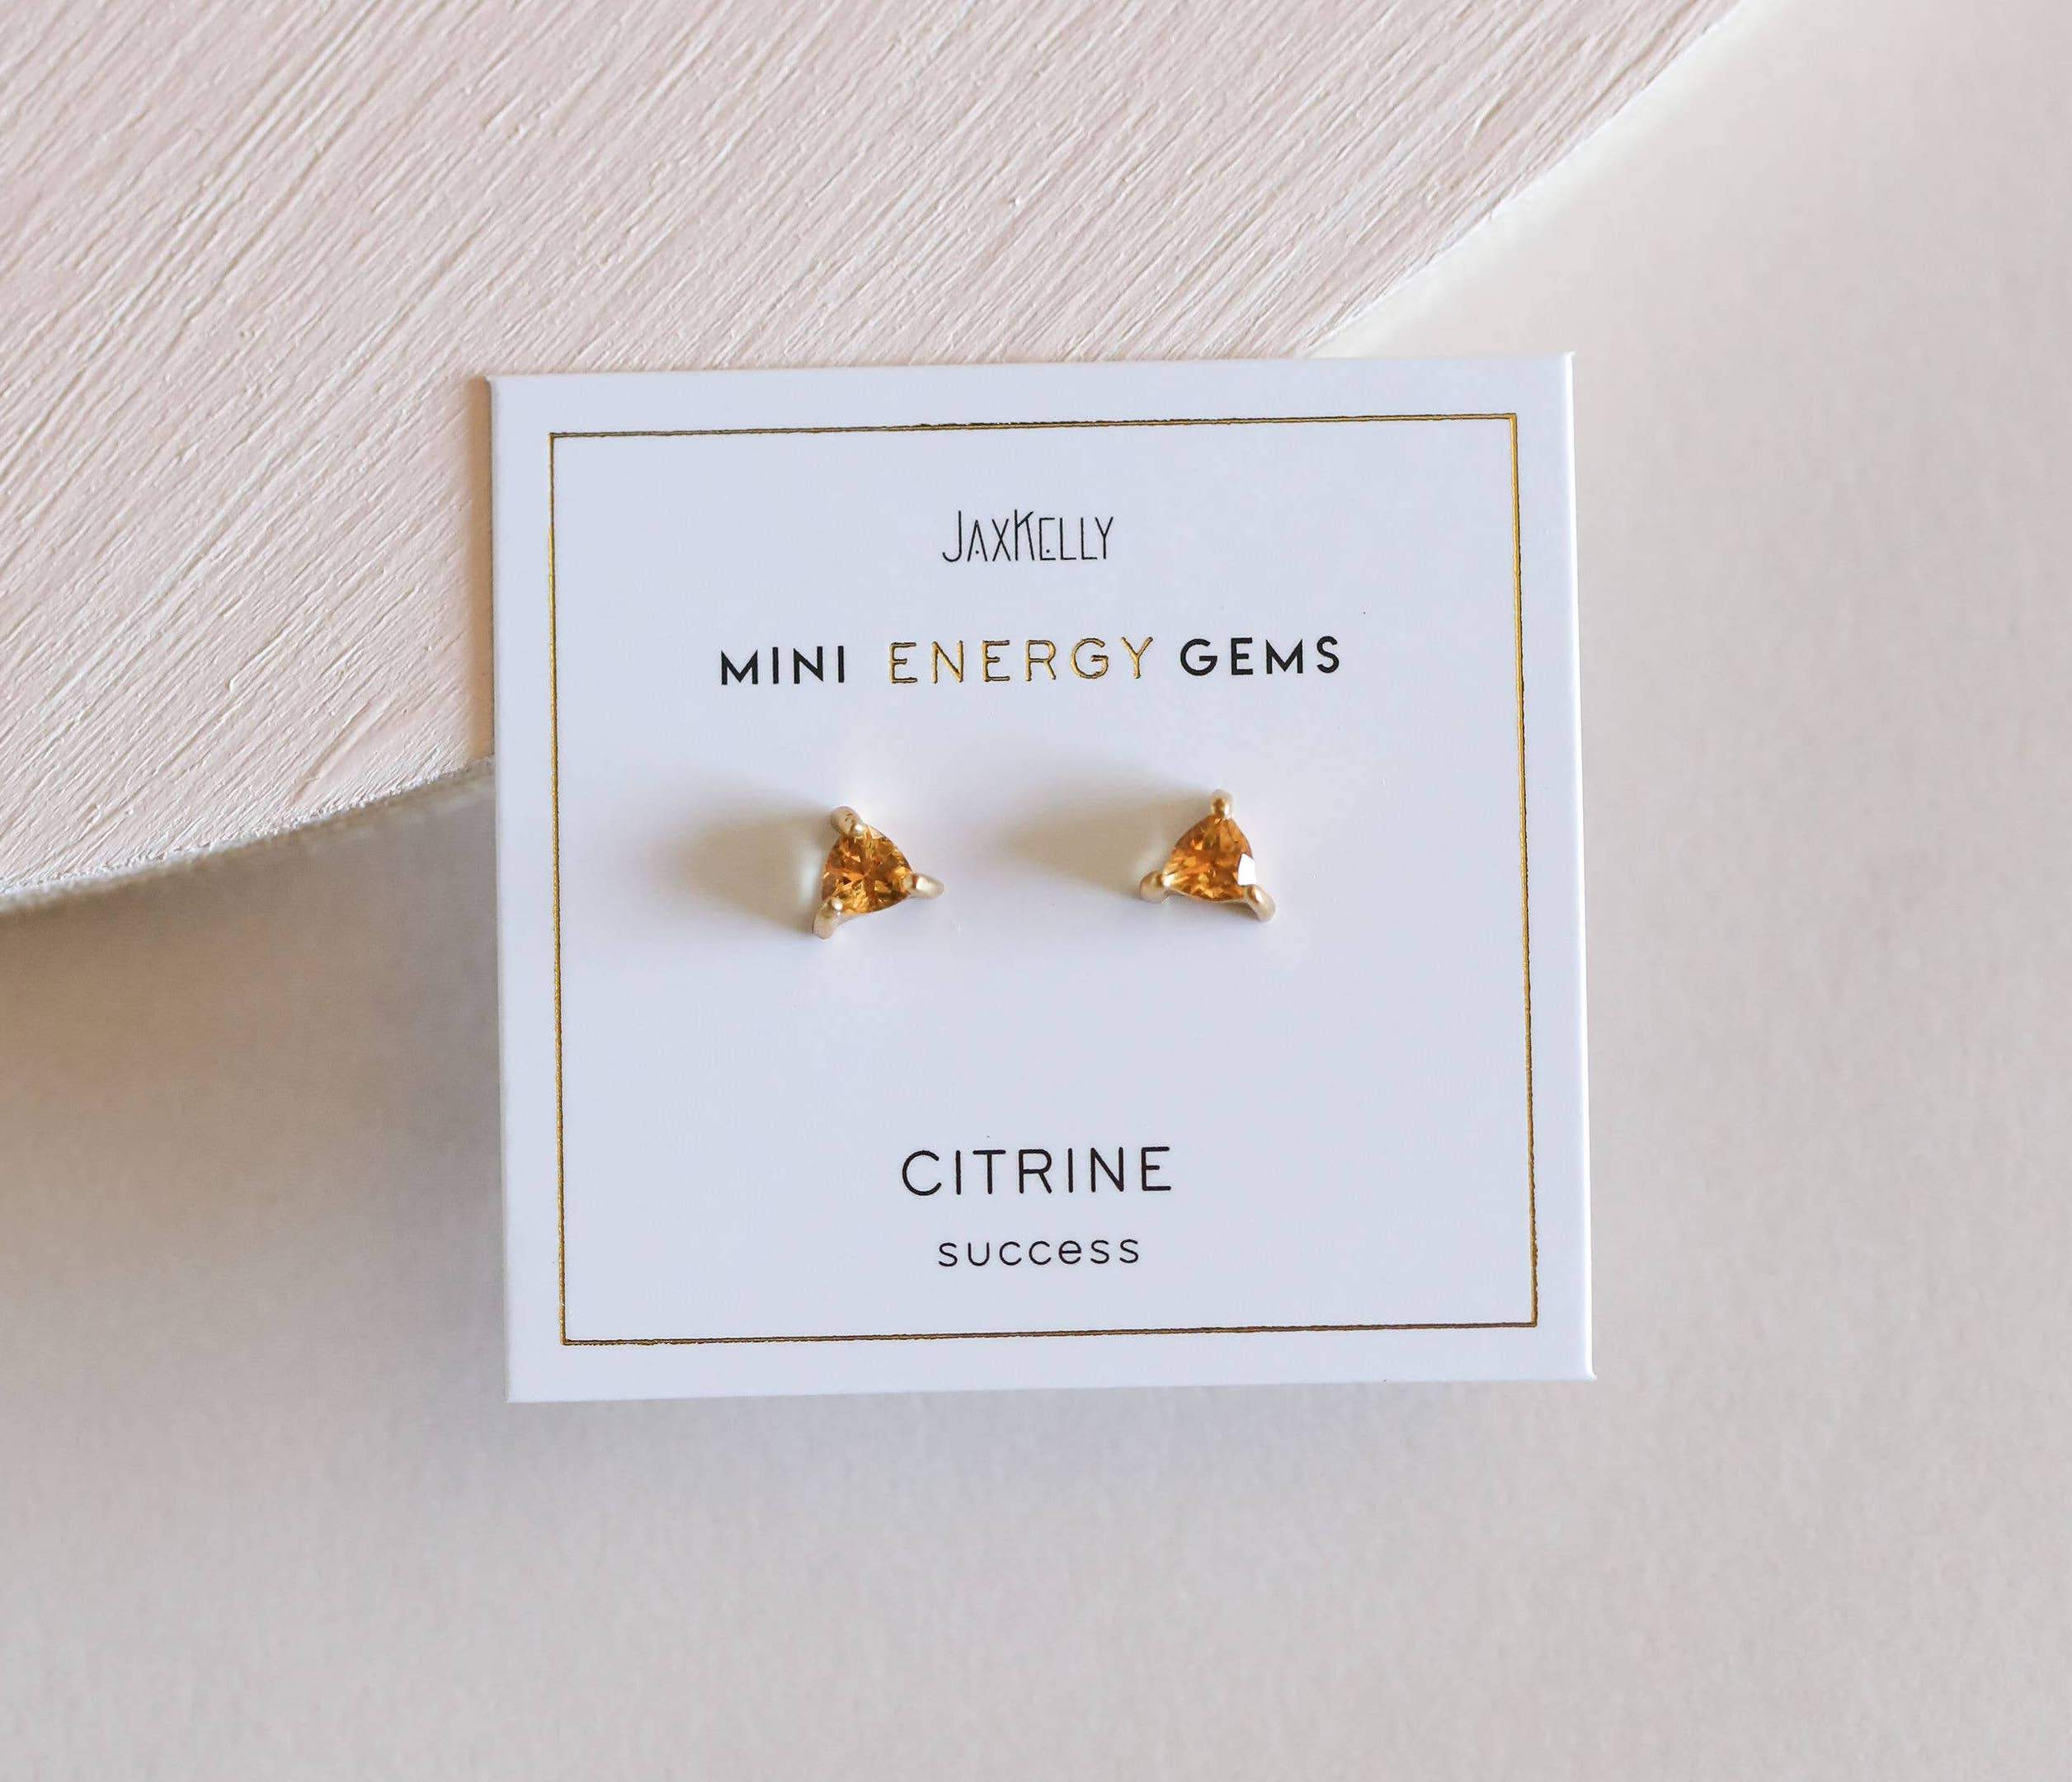 Citrine Mini Energy Gems